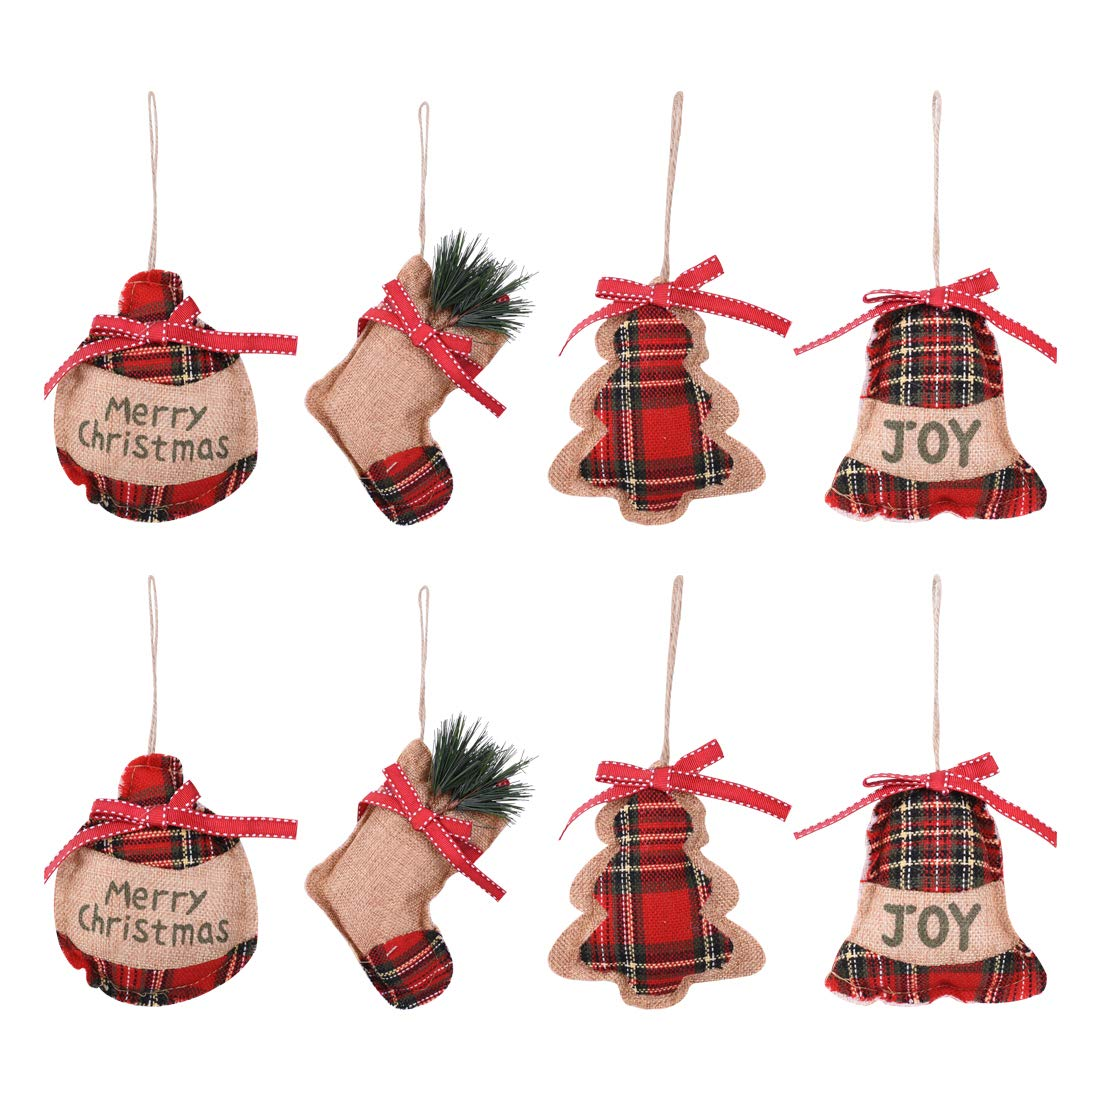 KOMIWOO 8 Pack Burlap Stocking Tree Ball Star Christmas Tree Ornaments, Great Rustic Vintage Holiday Party Decorations Xmas ornaments beige